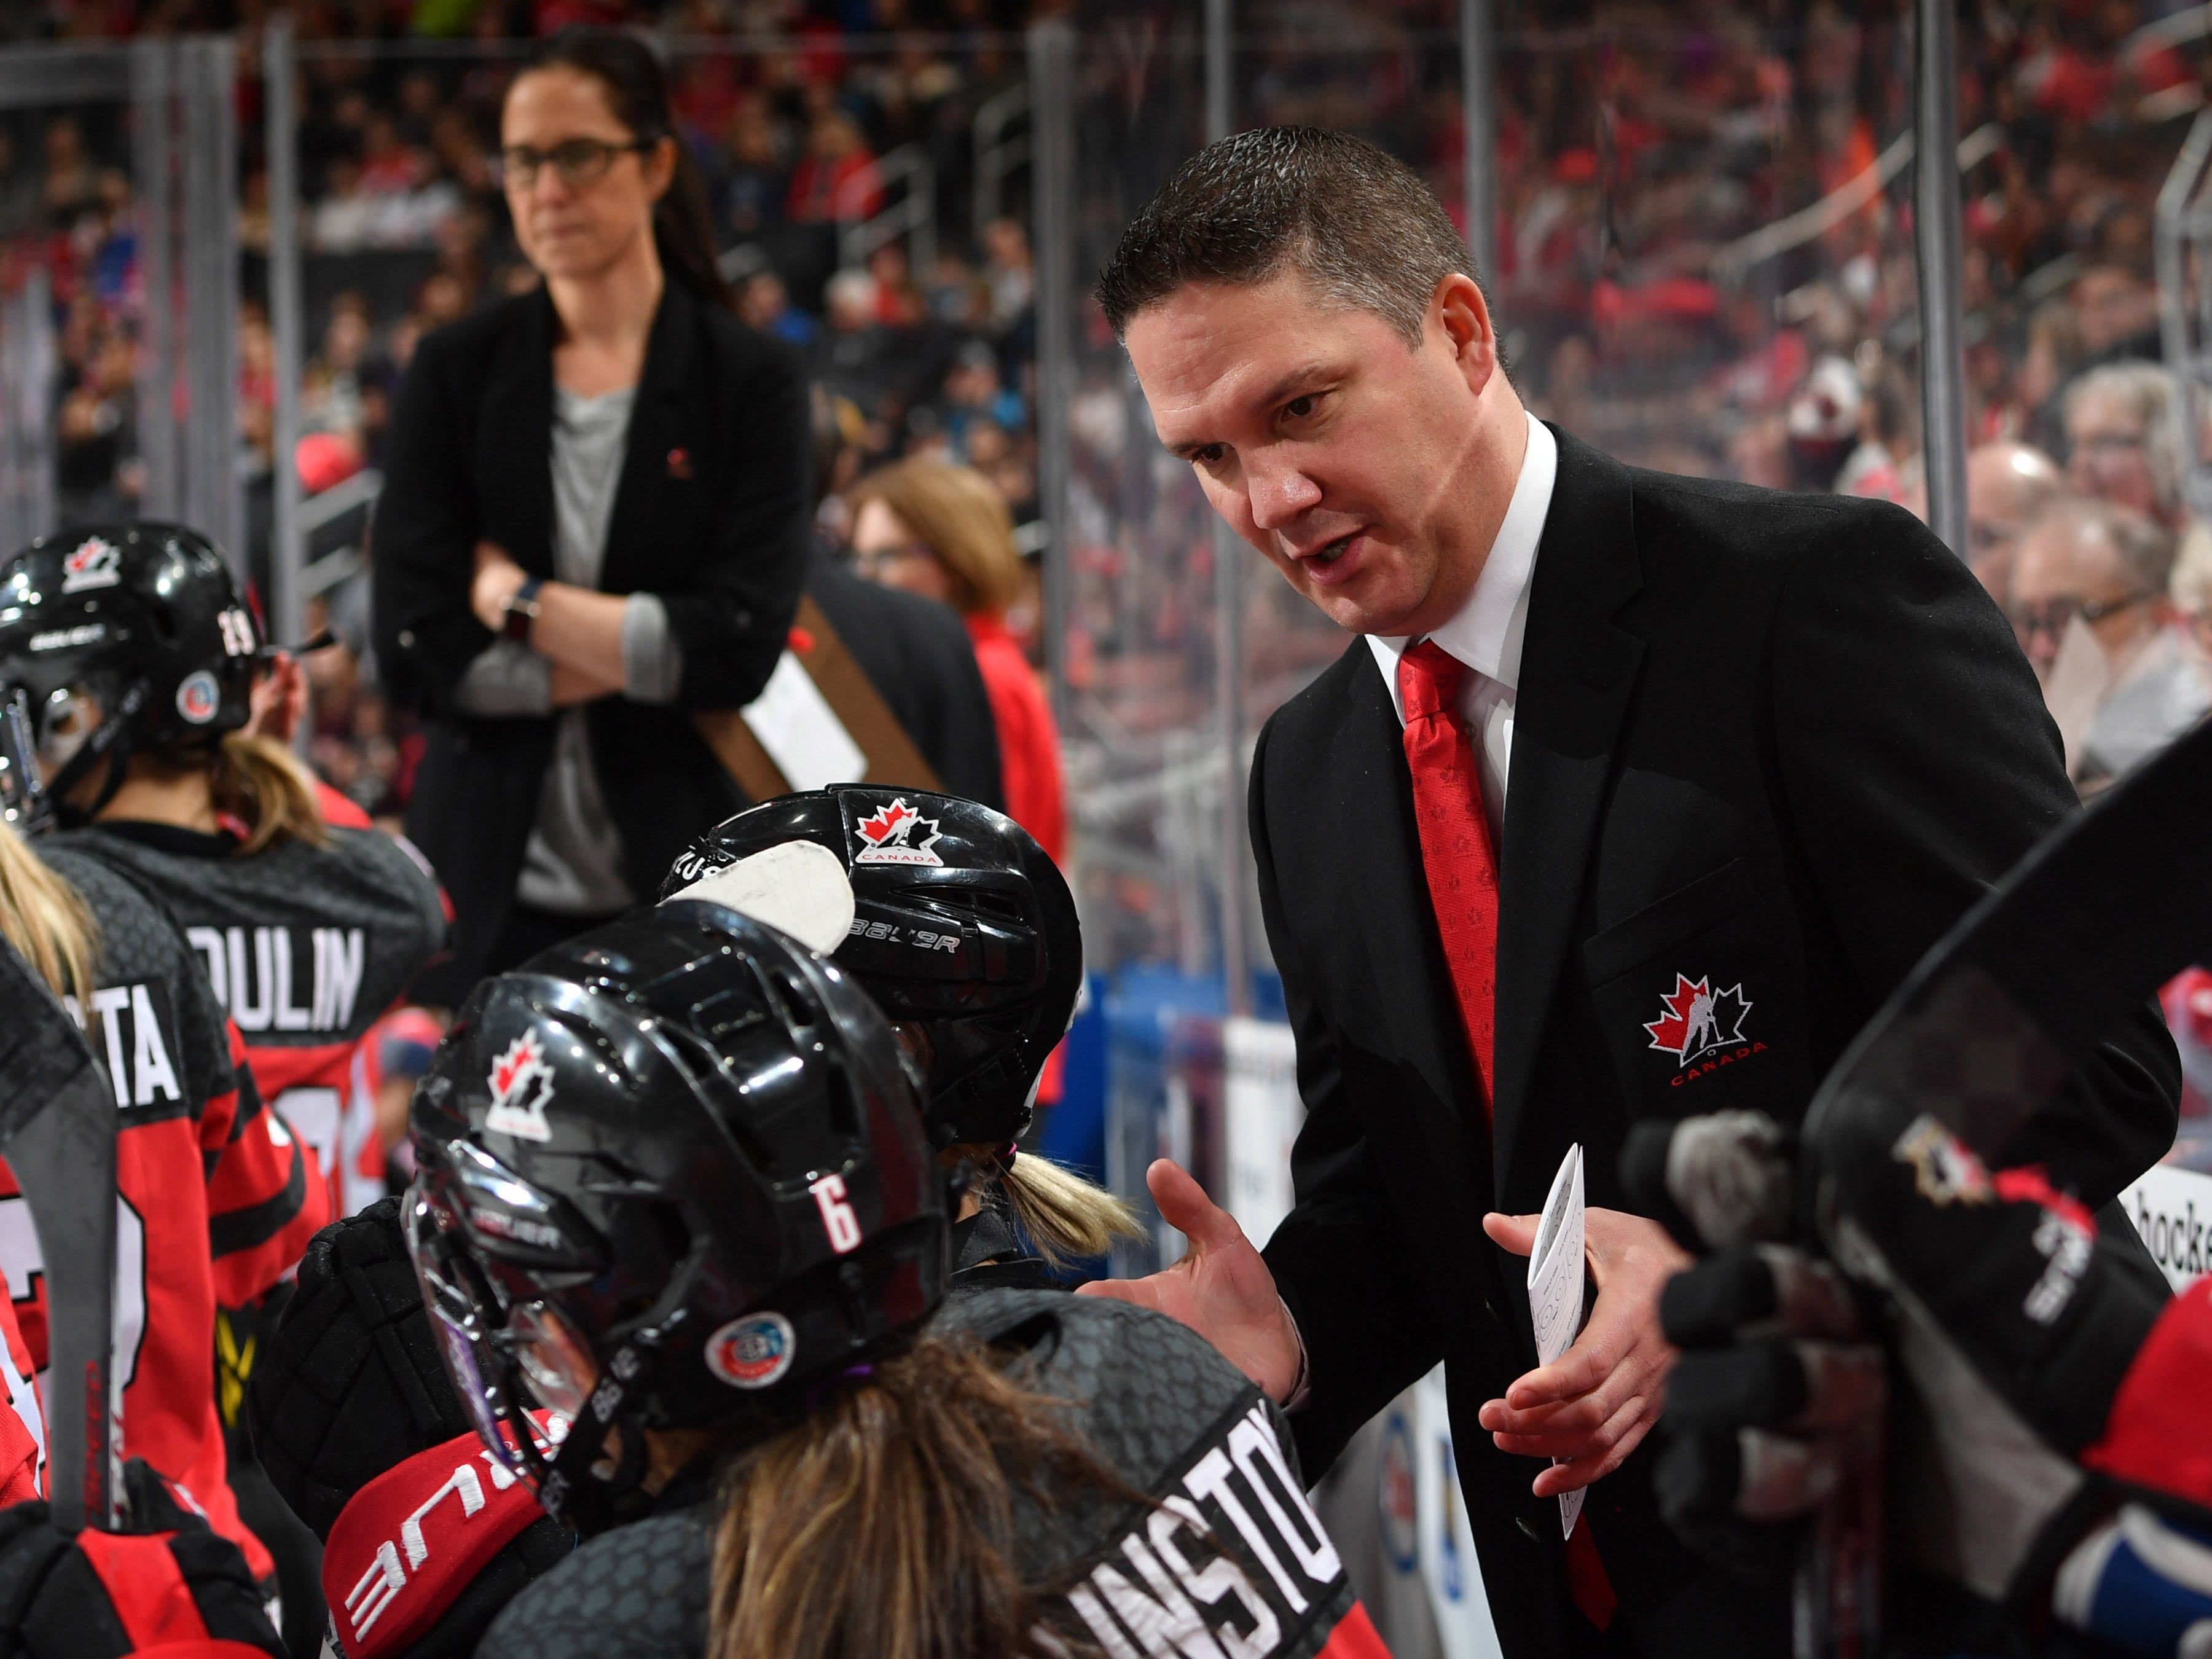 Team Canada Troy Ryan of Spryfield was disappointed that women's world championship was cancelled in Nova Scotia but glad to see it will remain in Canada. The tournament will be held in Calgary in August. - Hockey Canada